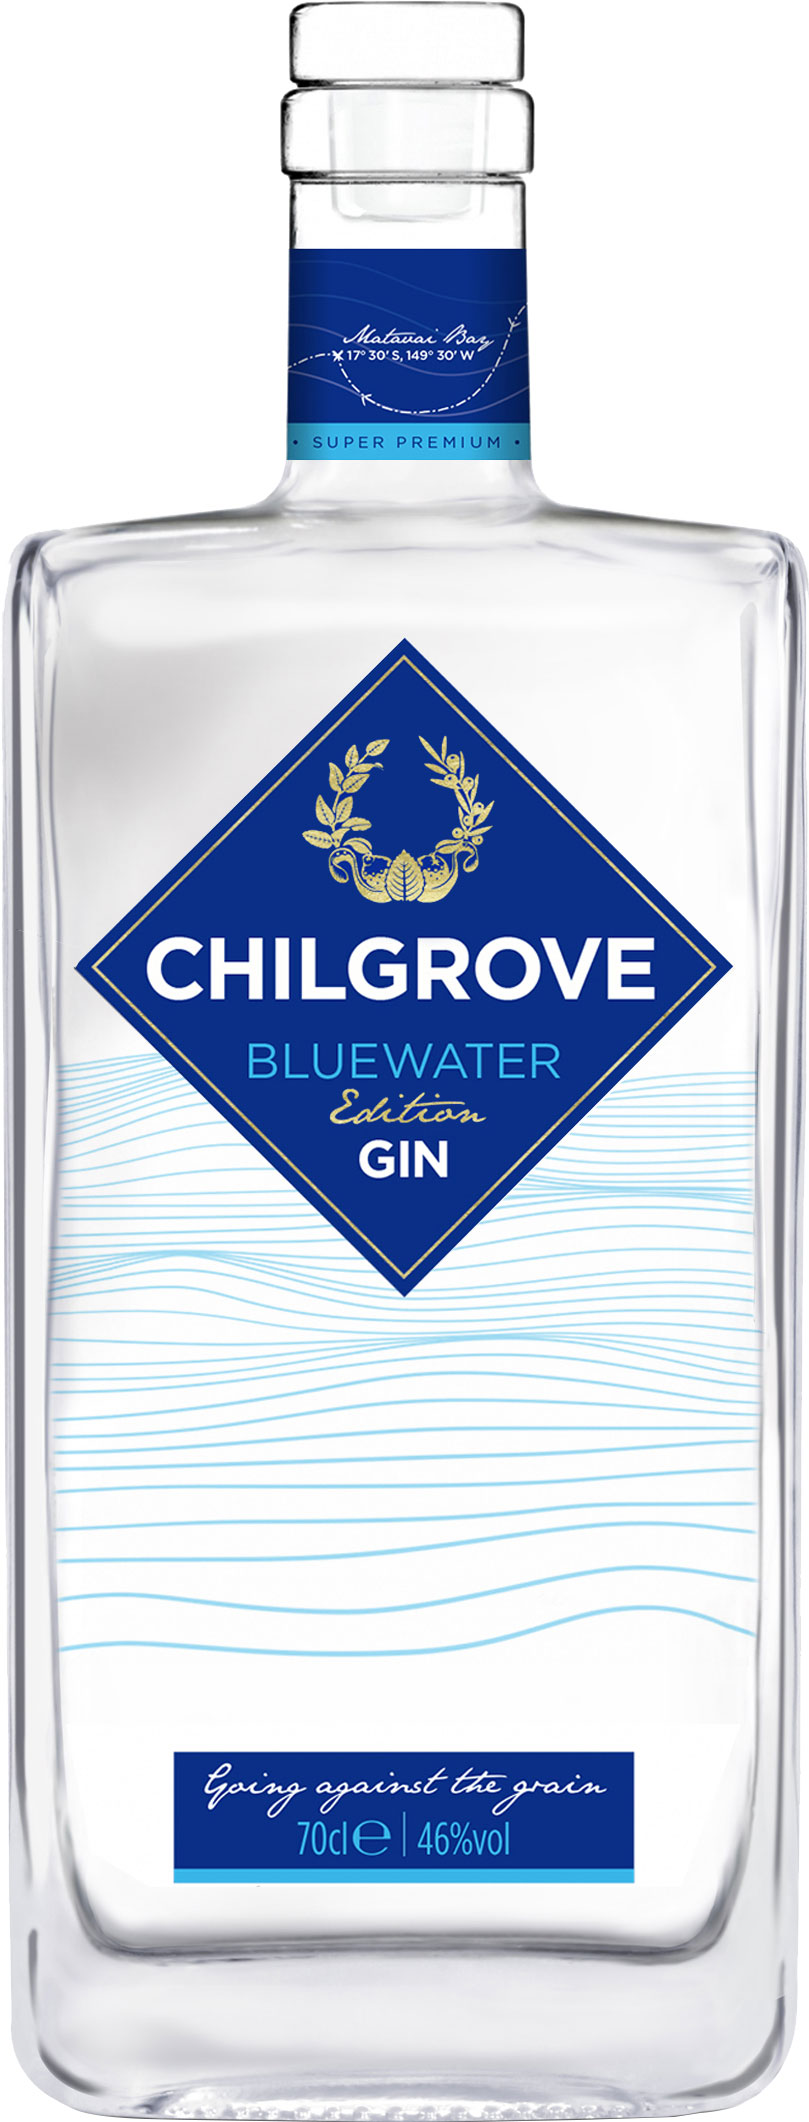 Chilgrove - Bluewater Edition Gin 70cl Bottle